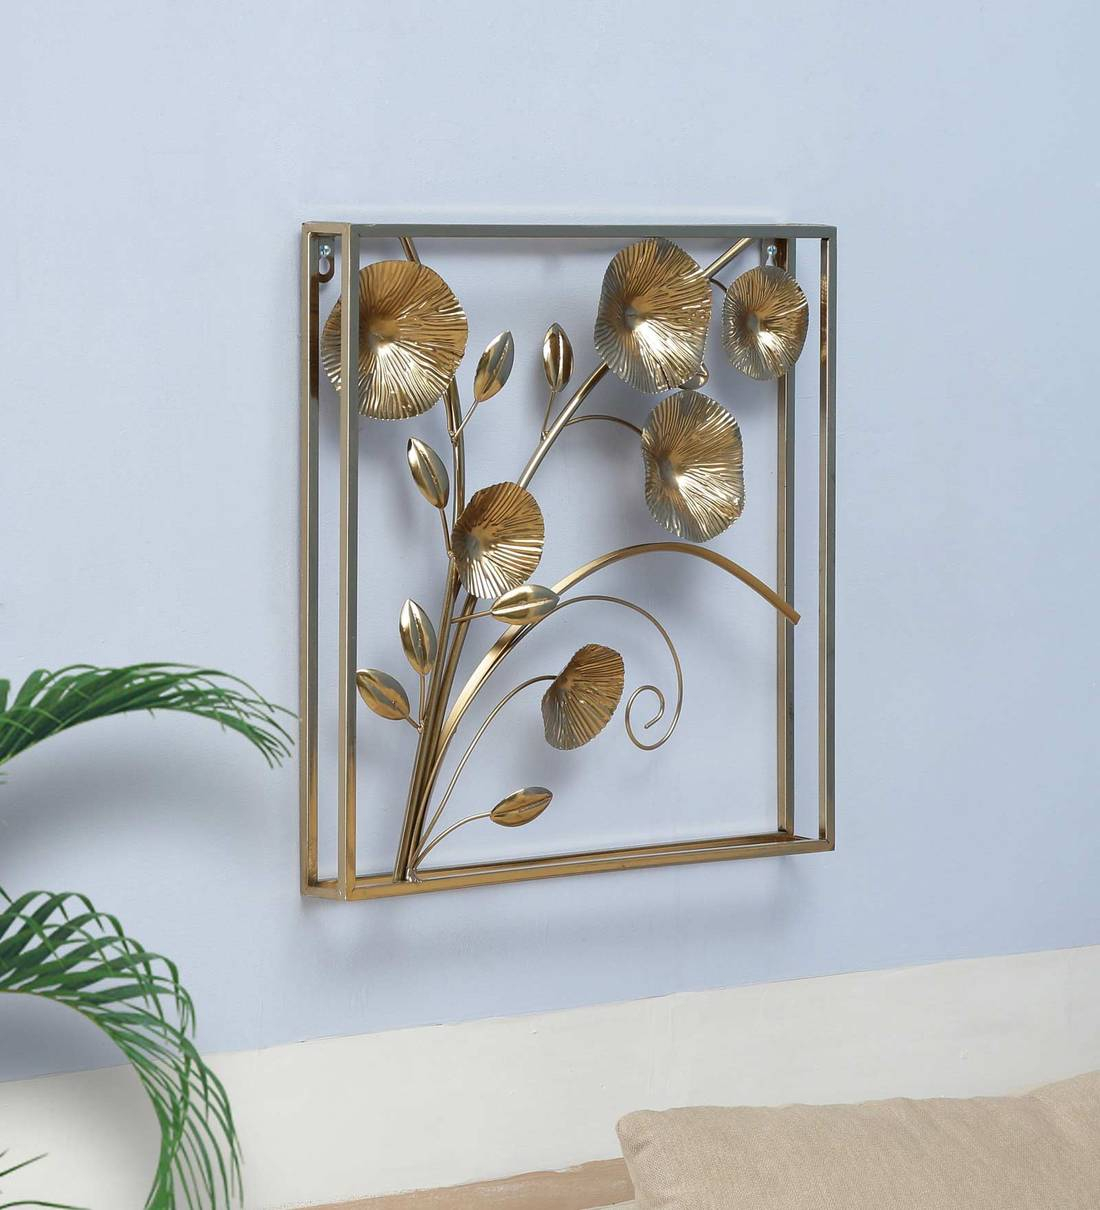 Metal Leaf Panel In Golden Wall Art Throughout 2018 Blended Fabric Leaf Wall Hangings (View 11 of 20)